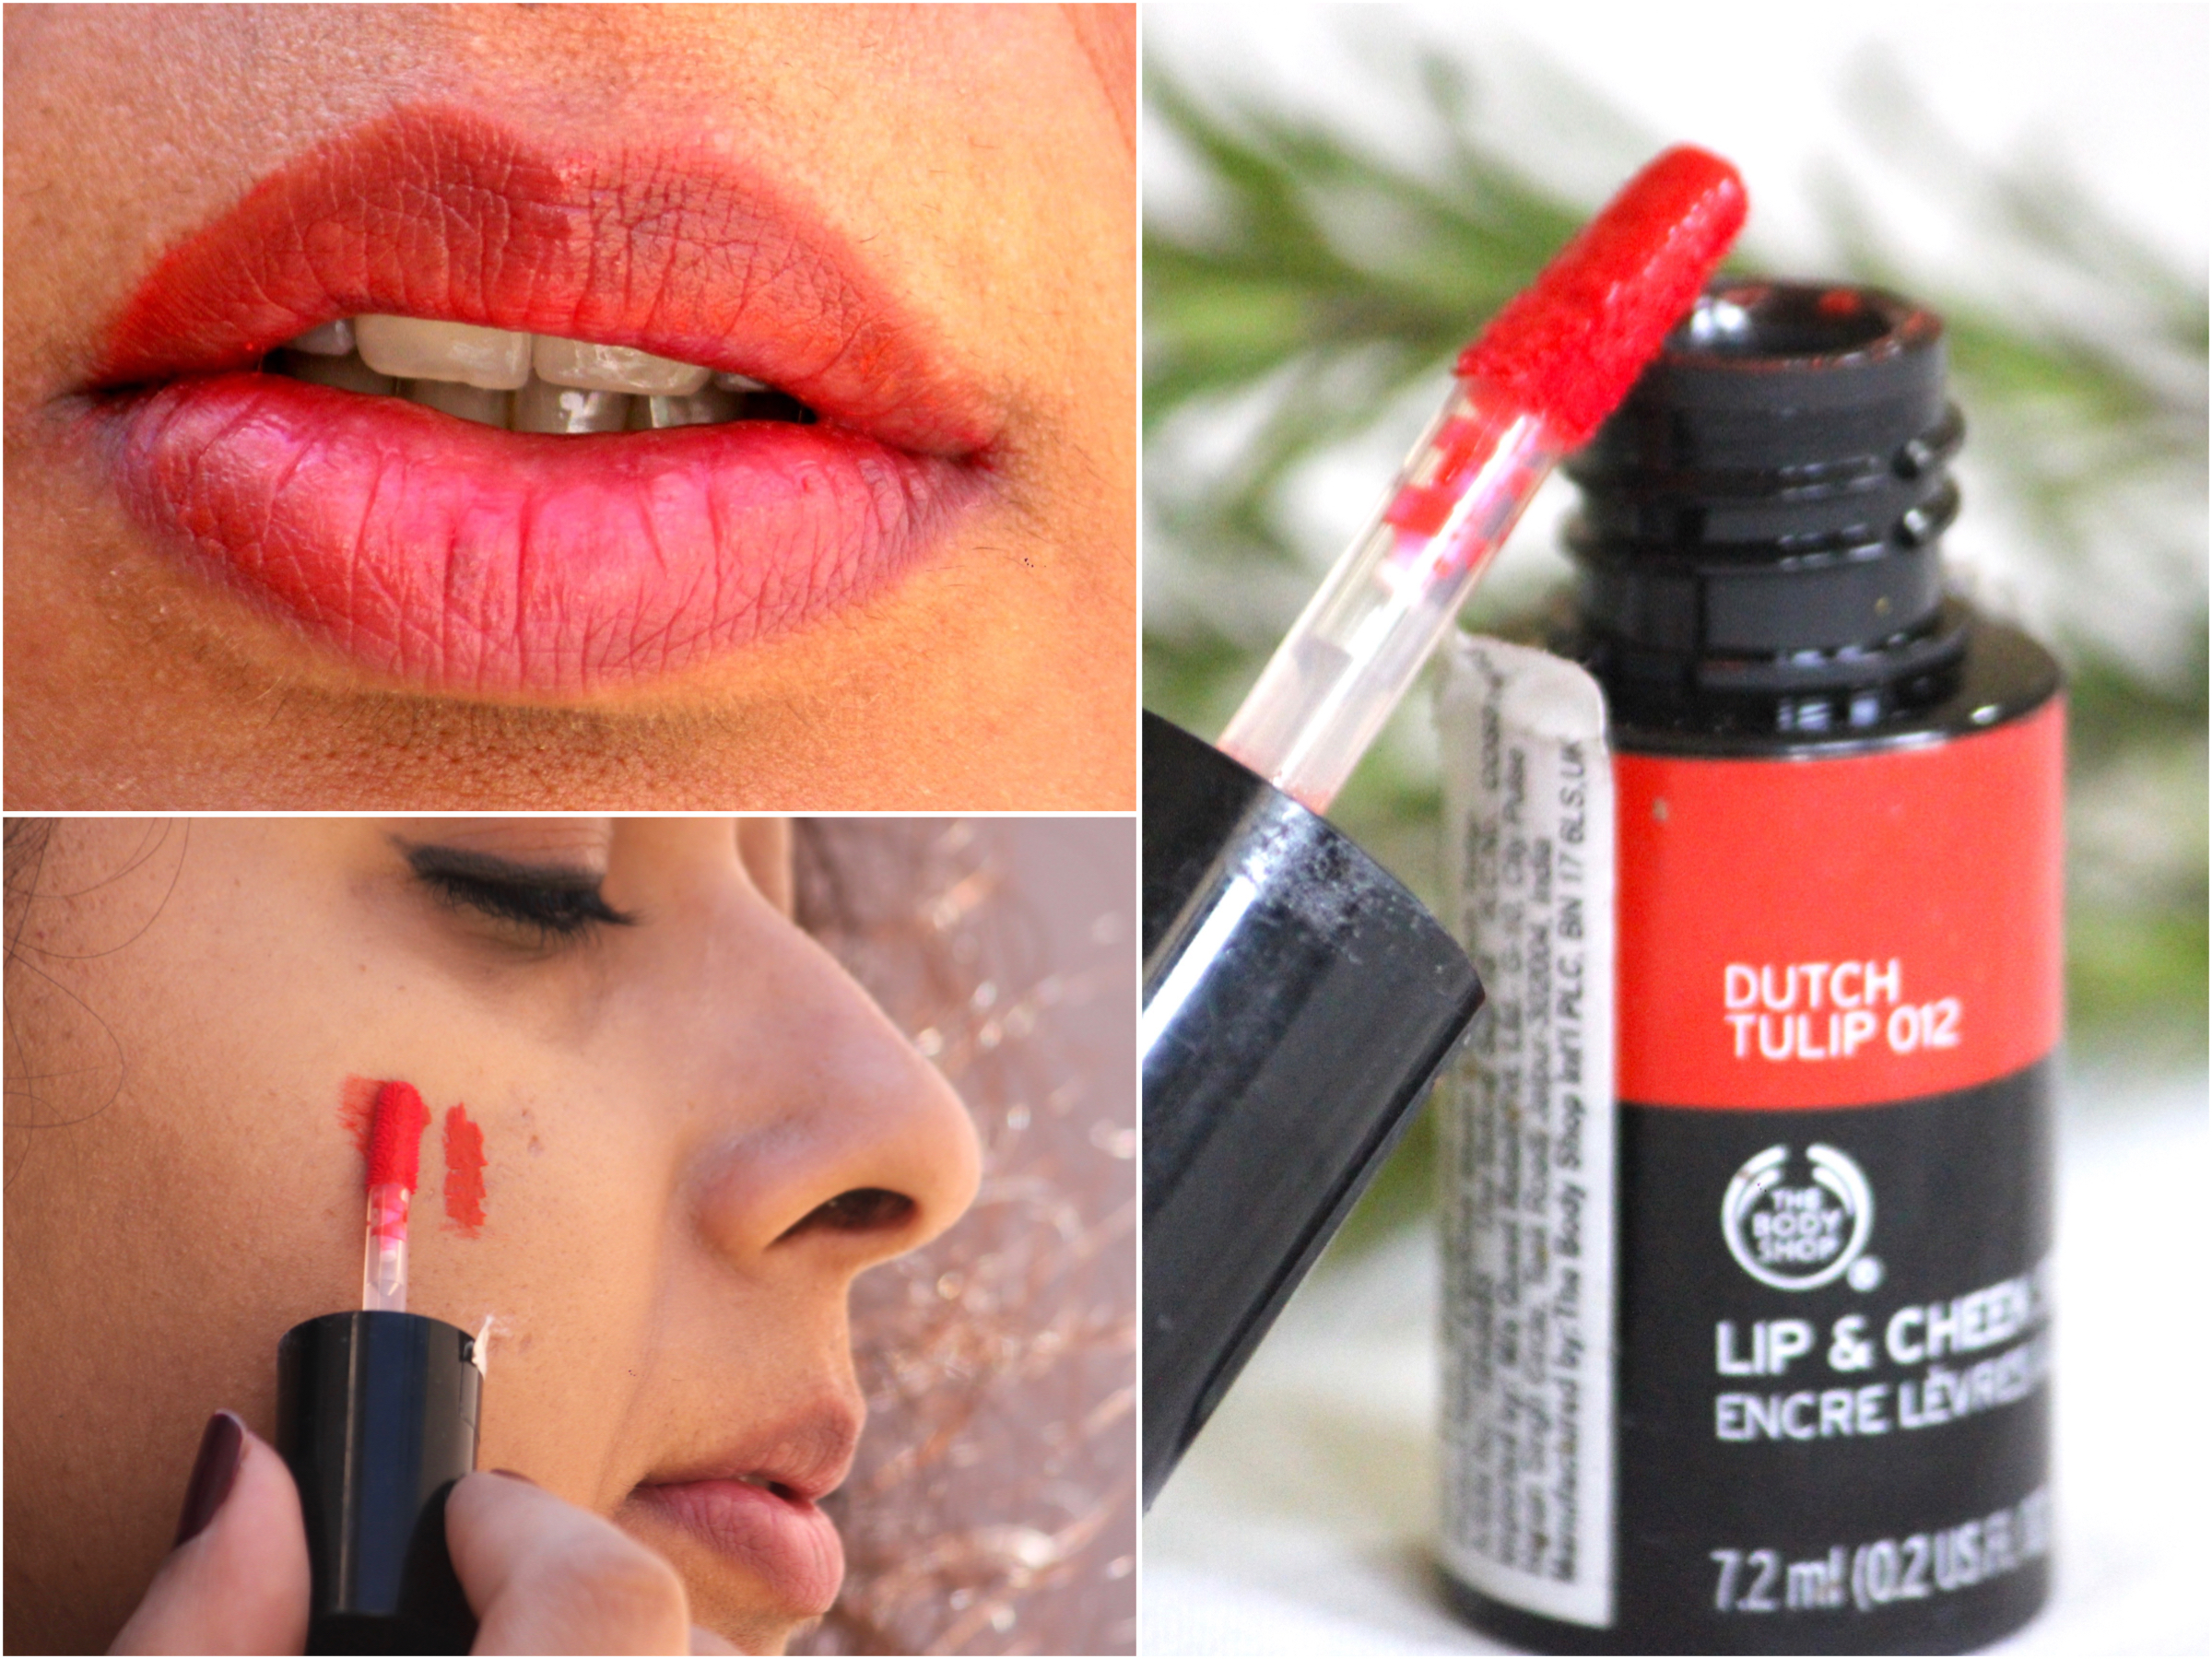 53c0bf9fc11 The Body Shop Lip and Cheek Stain Dutch Tulip 012 Review